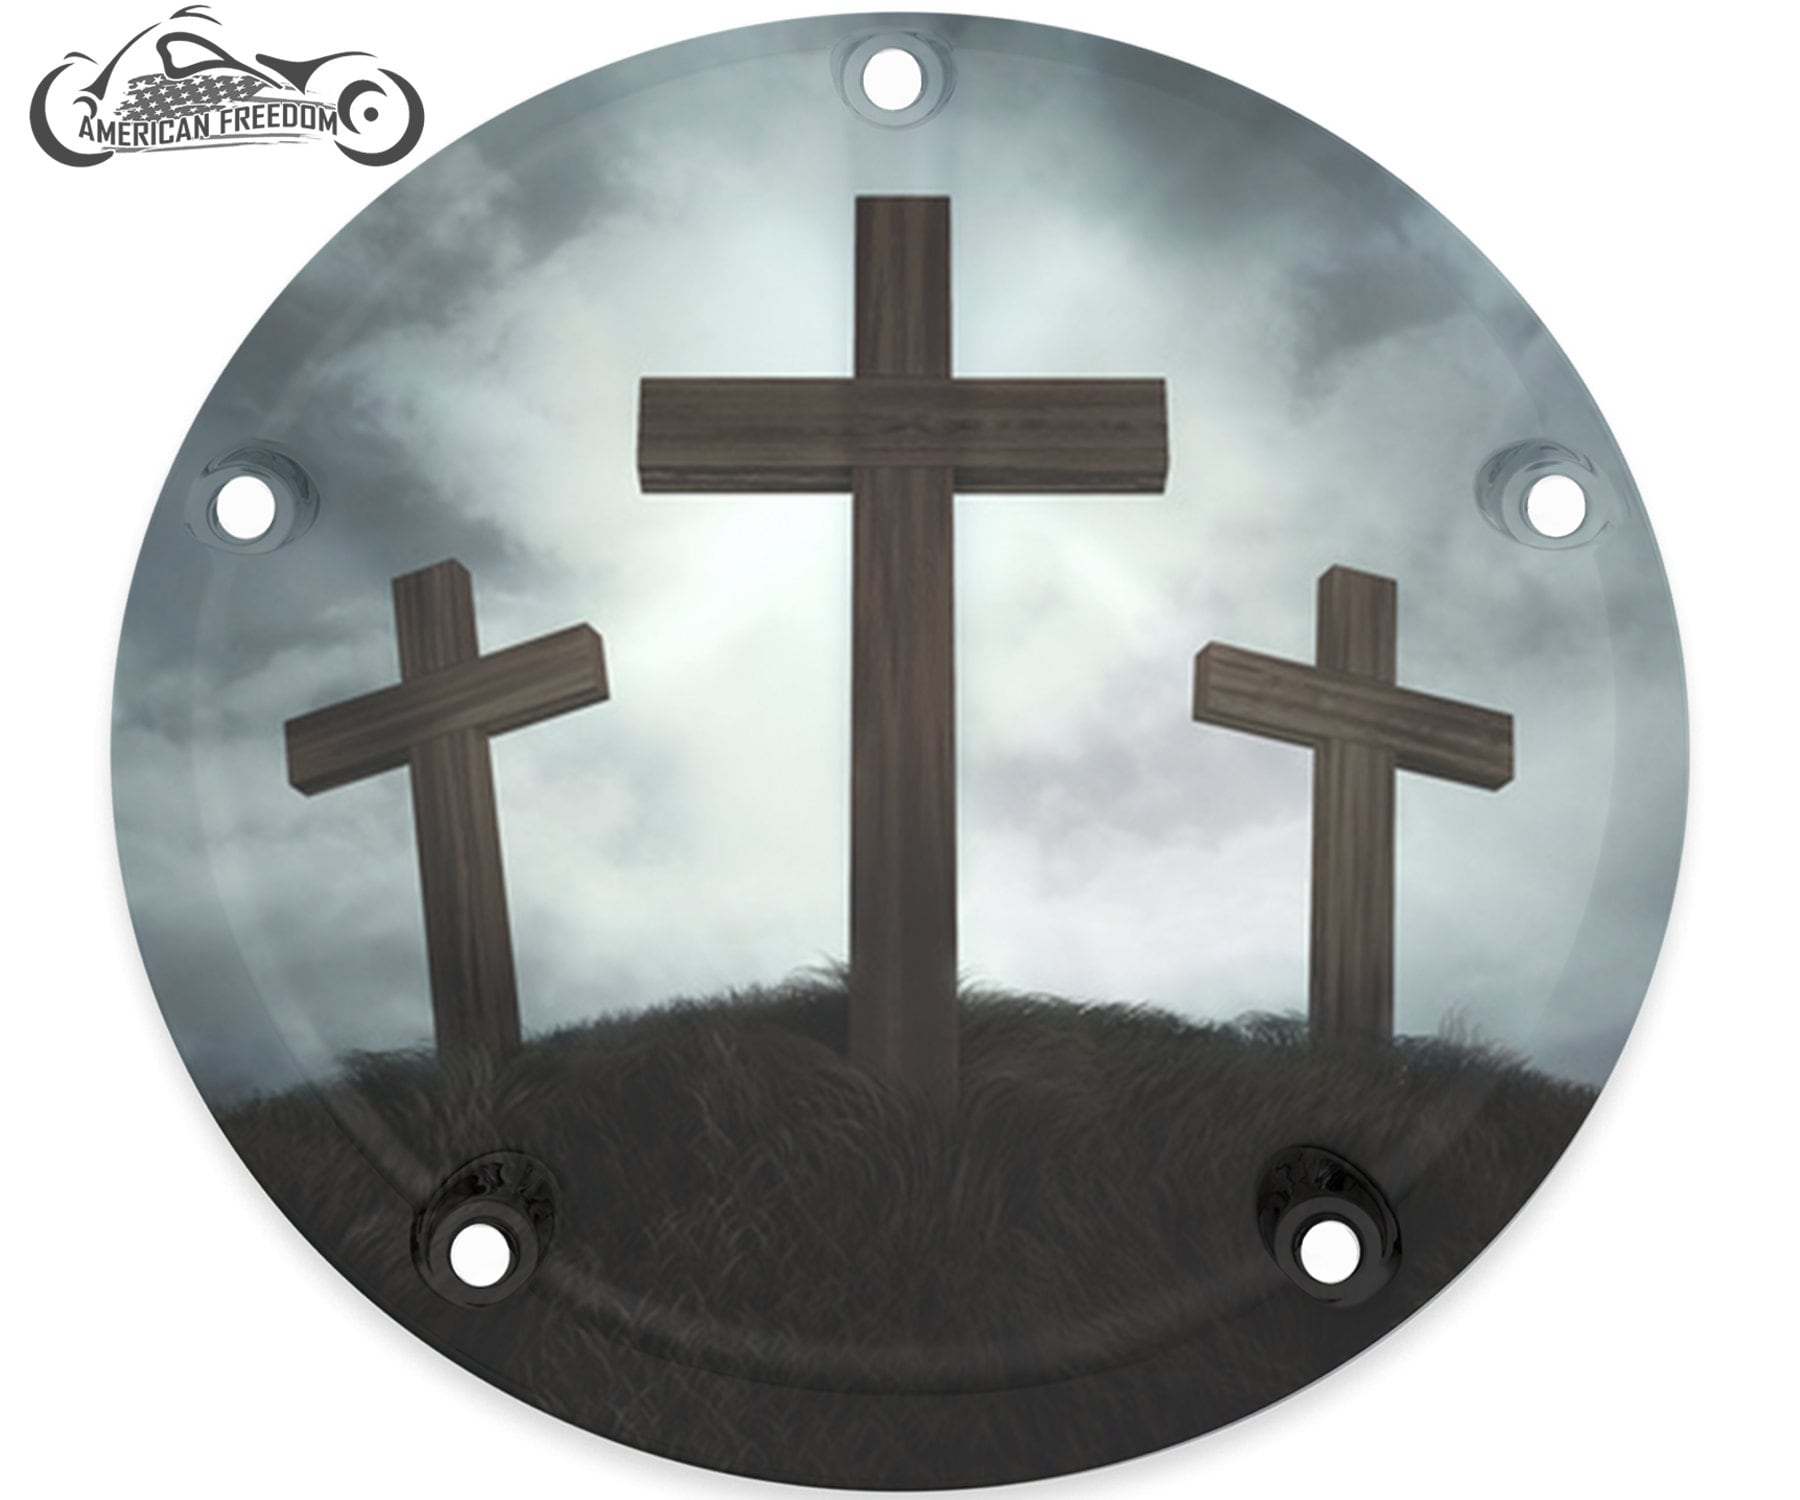 Harley Davidson Custom Made Derby Cover or Timing cover (Your choice) For  all Big Twin, Twin Cam, Milwaukee 8 & Sportster - 3 Crosses